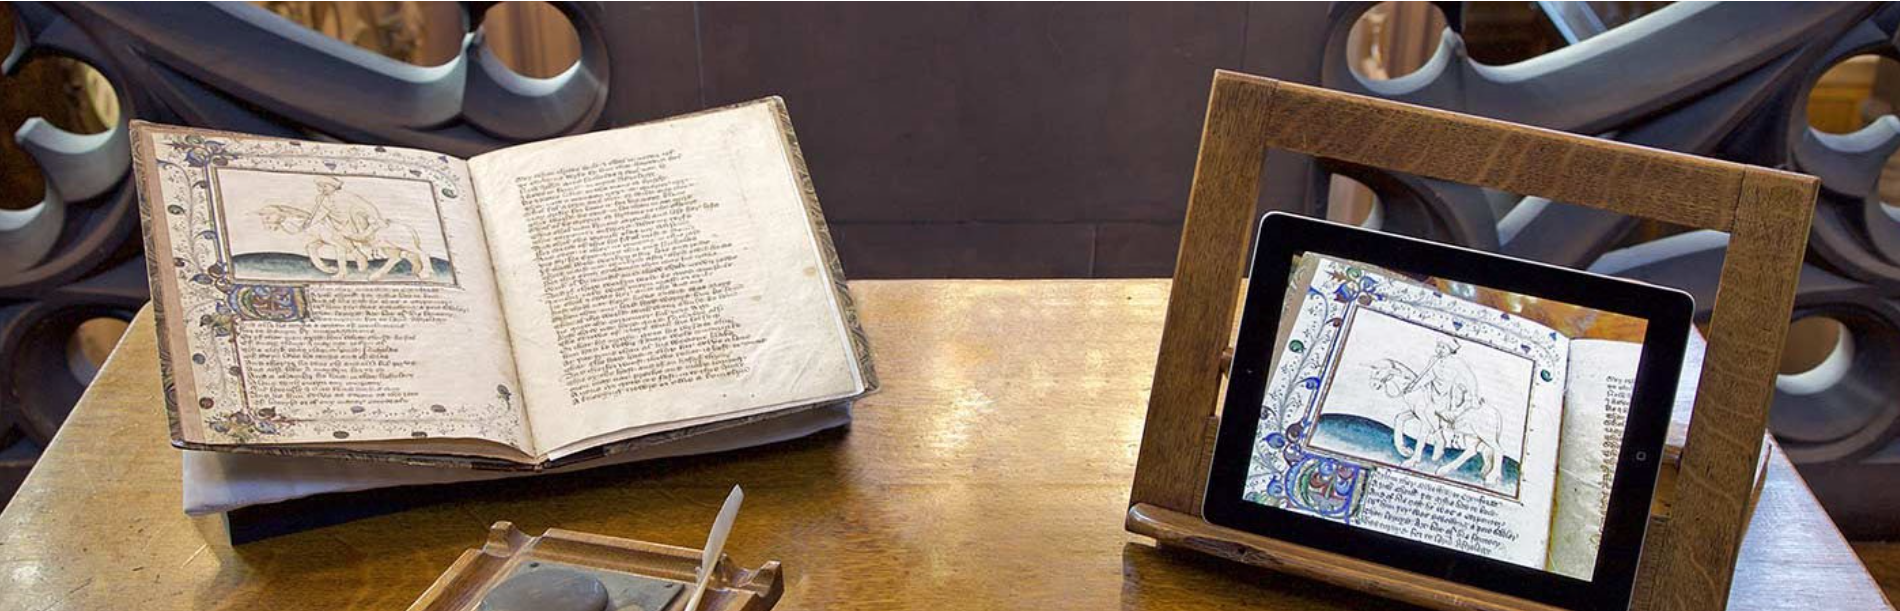 picture of a Chaucer manuscript and an iPad image of the same manuscript